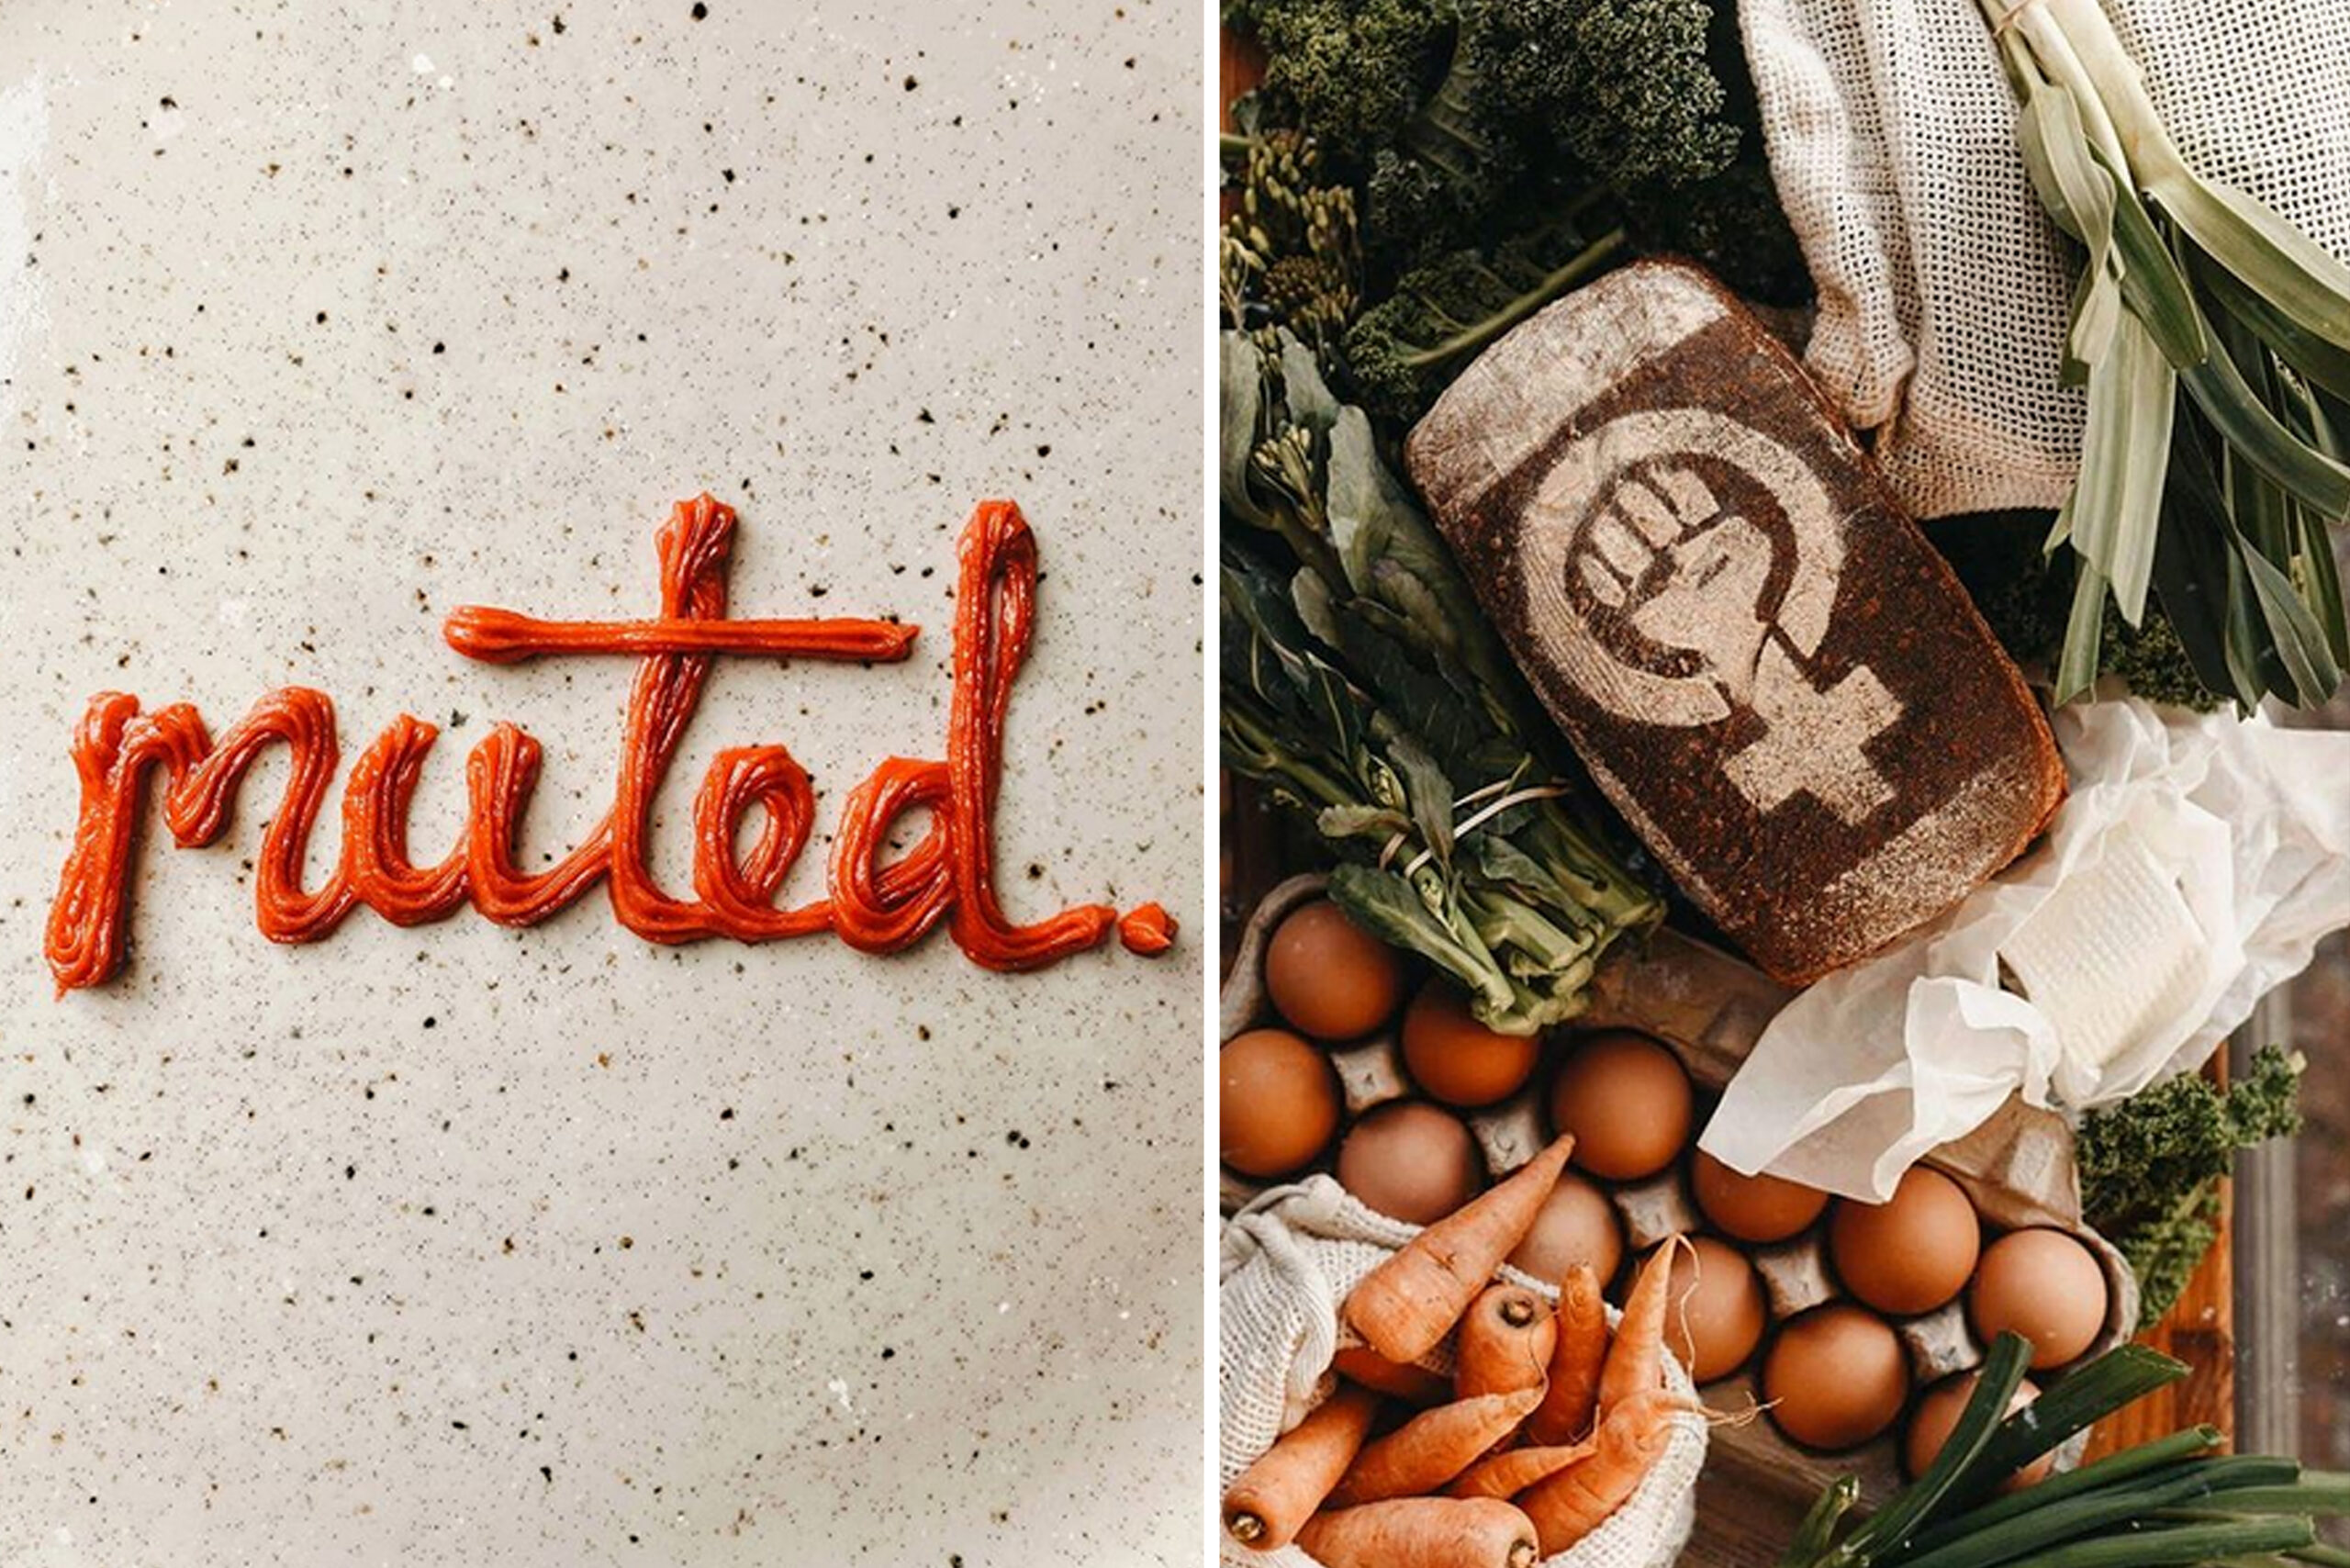 "On the left, red frosting spells out the word ""muted"" on speckled table; on the right, a loaf of bread is dusted with flour, making a design of a raised fist inside the female symbol"